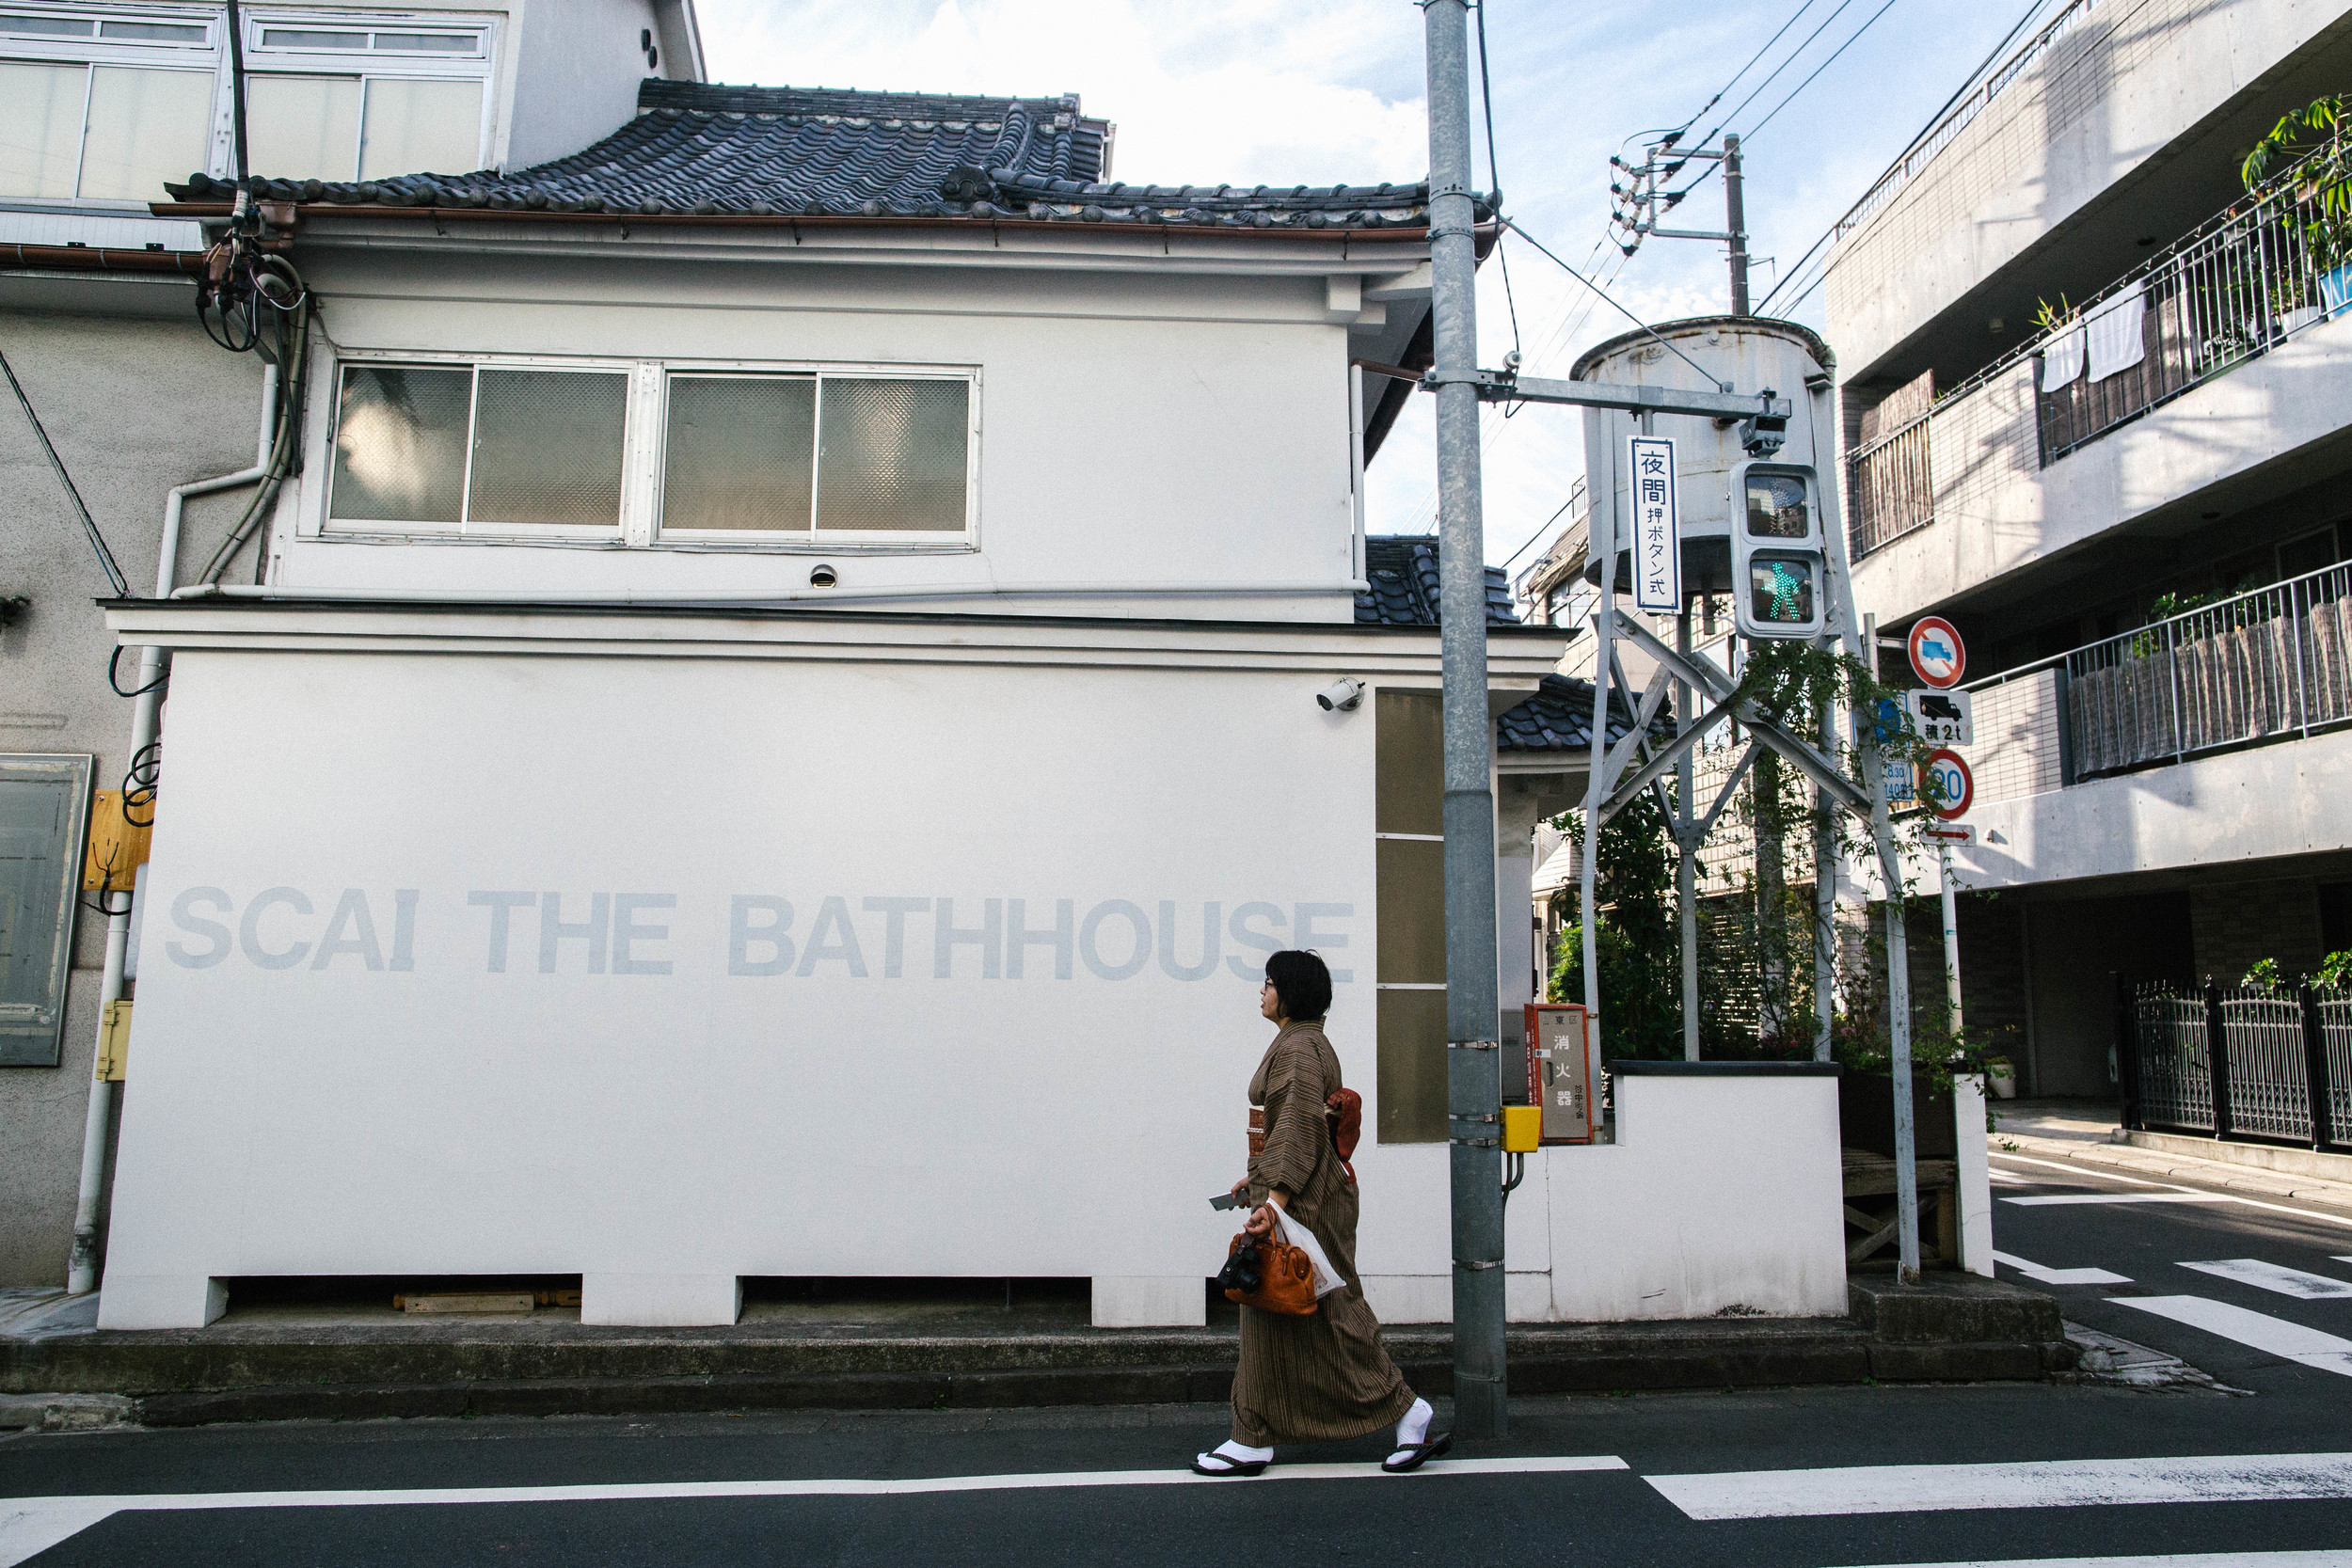 SCAI THE BATHHOUSE